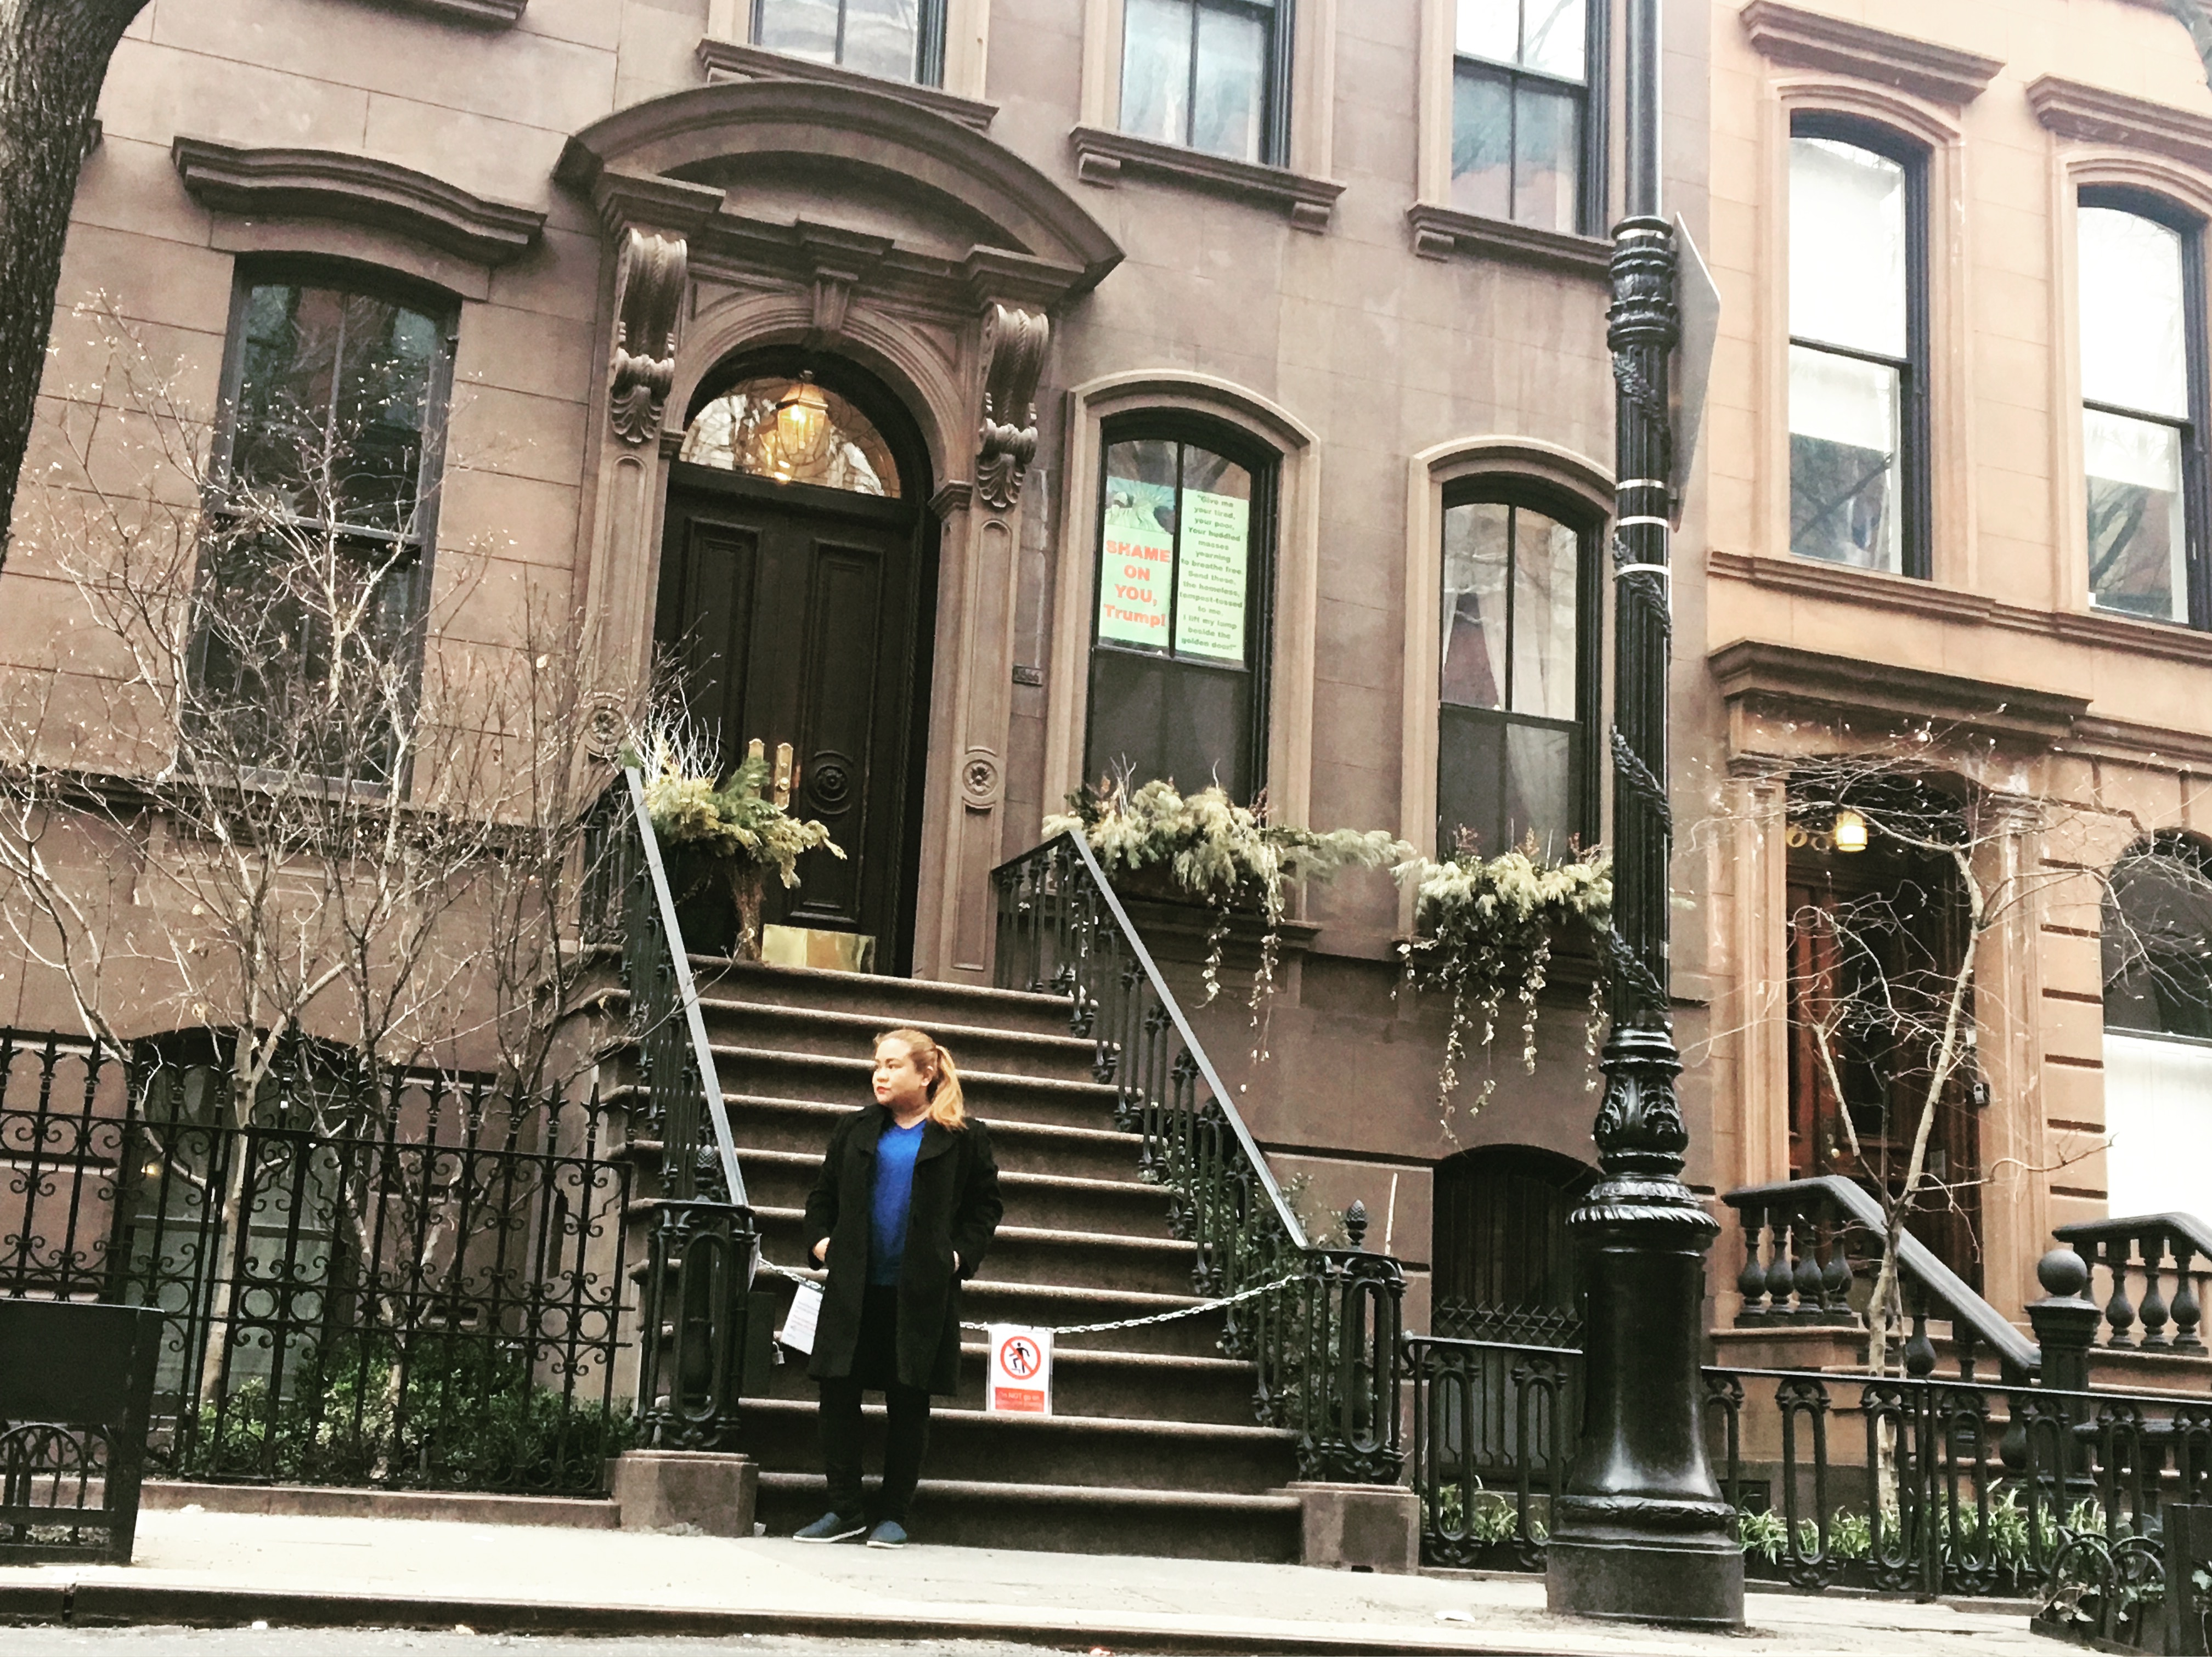 At the Carrie Bradshaw of Sex And The City apartment New York